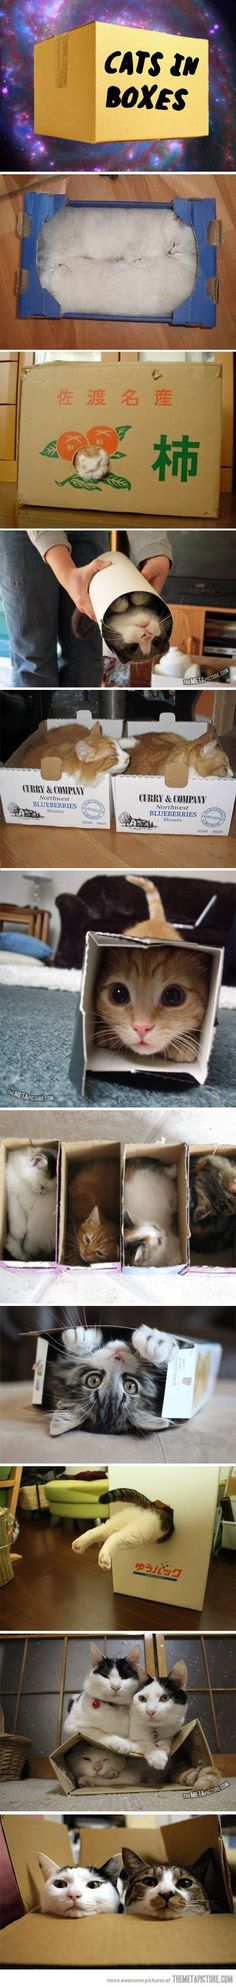 Just in case you forgot that cats like boxes: